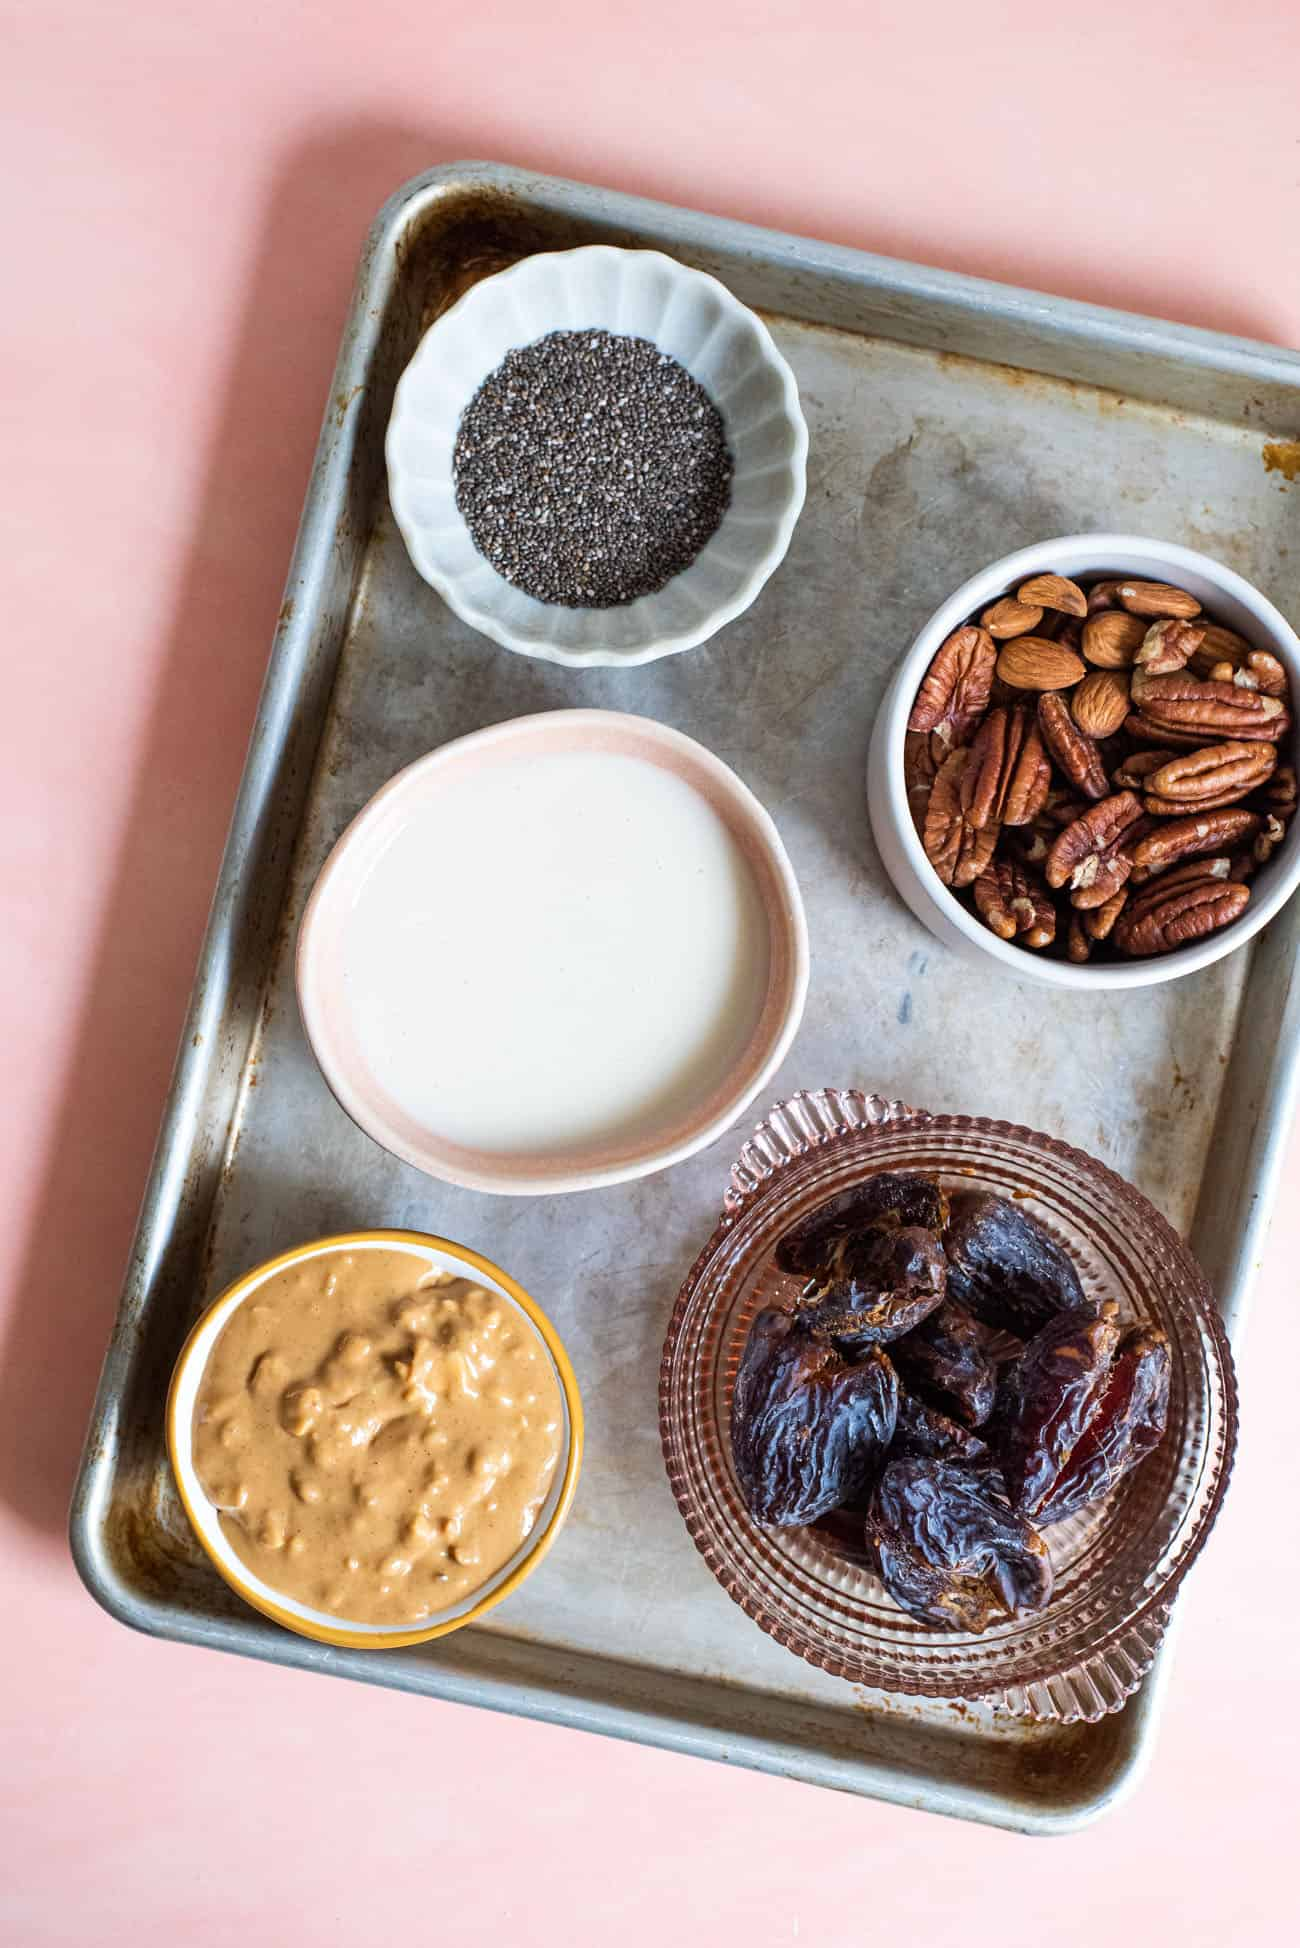 Chia seeds, coconut butter, peanut butter, almonds, and dates arranged on a small baking sheet